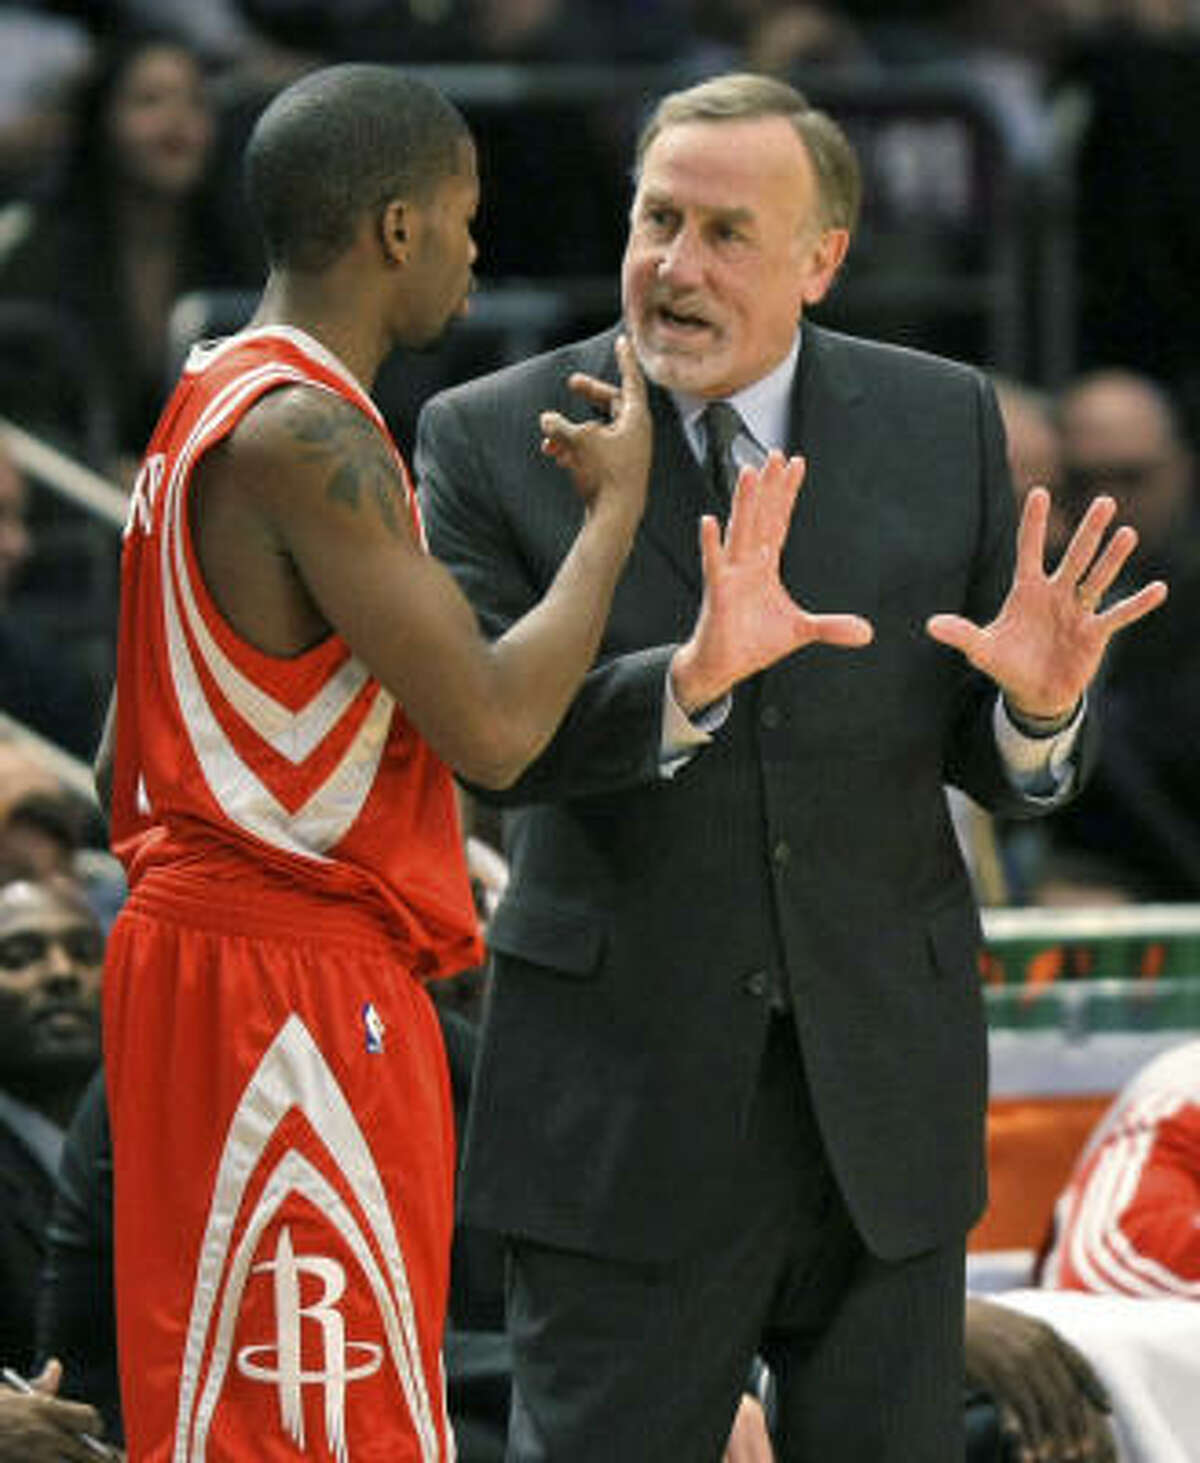 Rockets coach Rick Adelman gestures as he talks to guard Aaron Brooks in the fourth quarter.